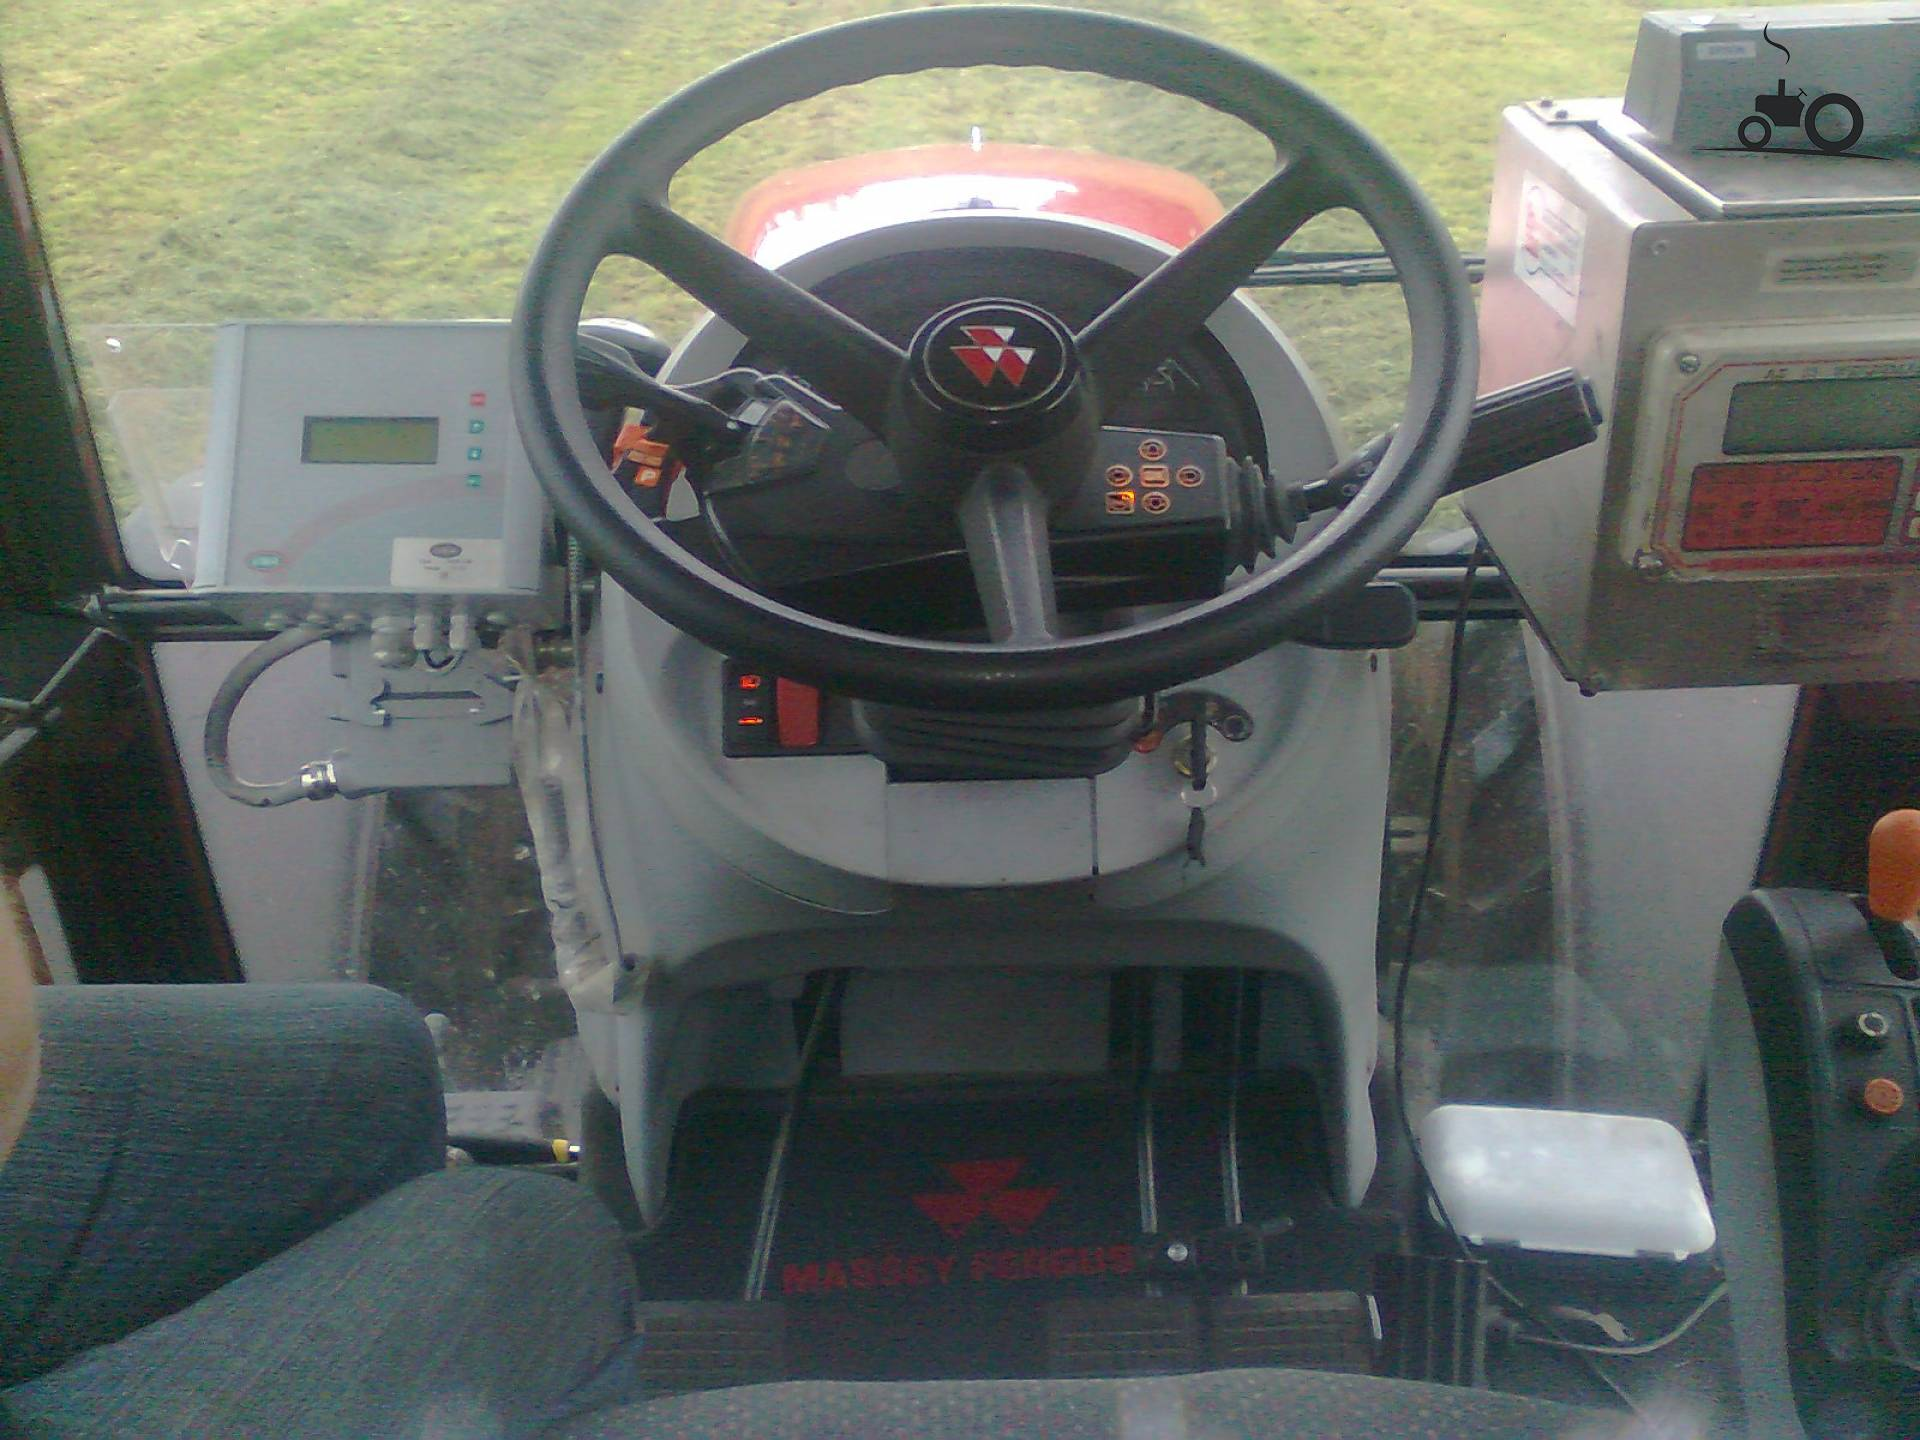 Massey ferguson interieur foto 39 s pagina 10 for Interieur foto s